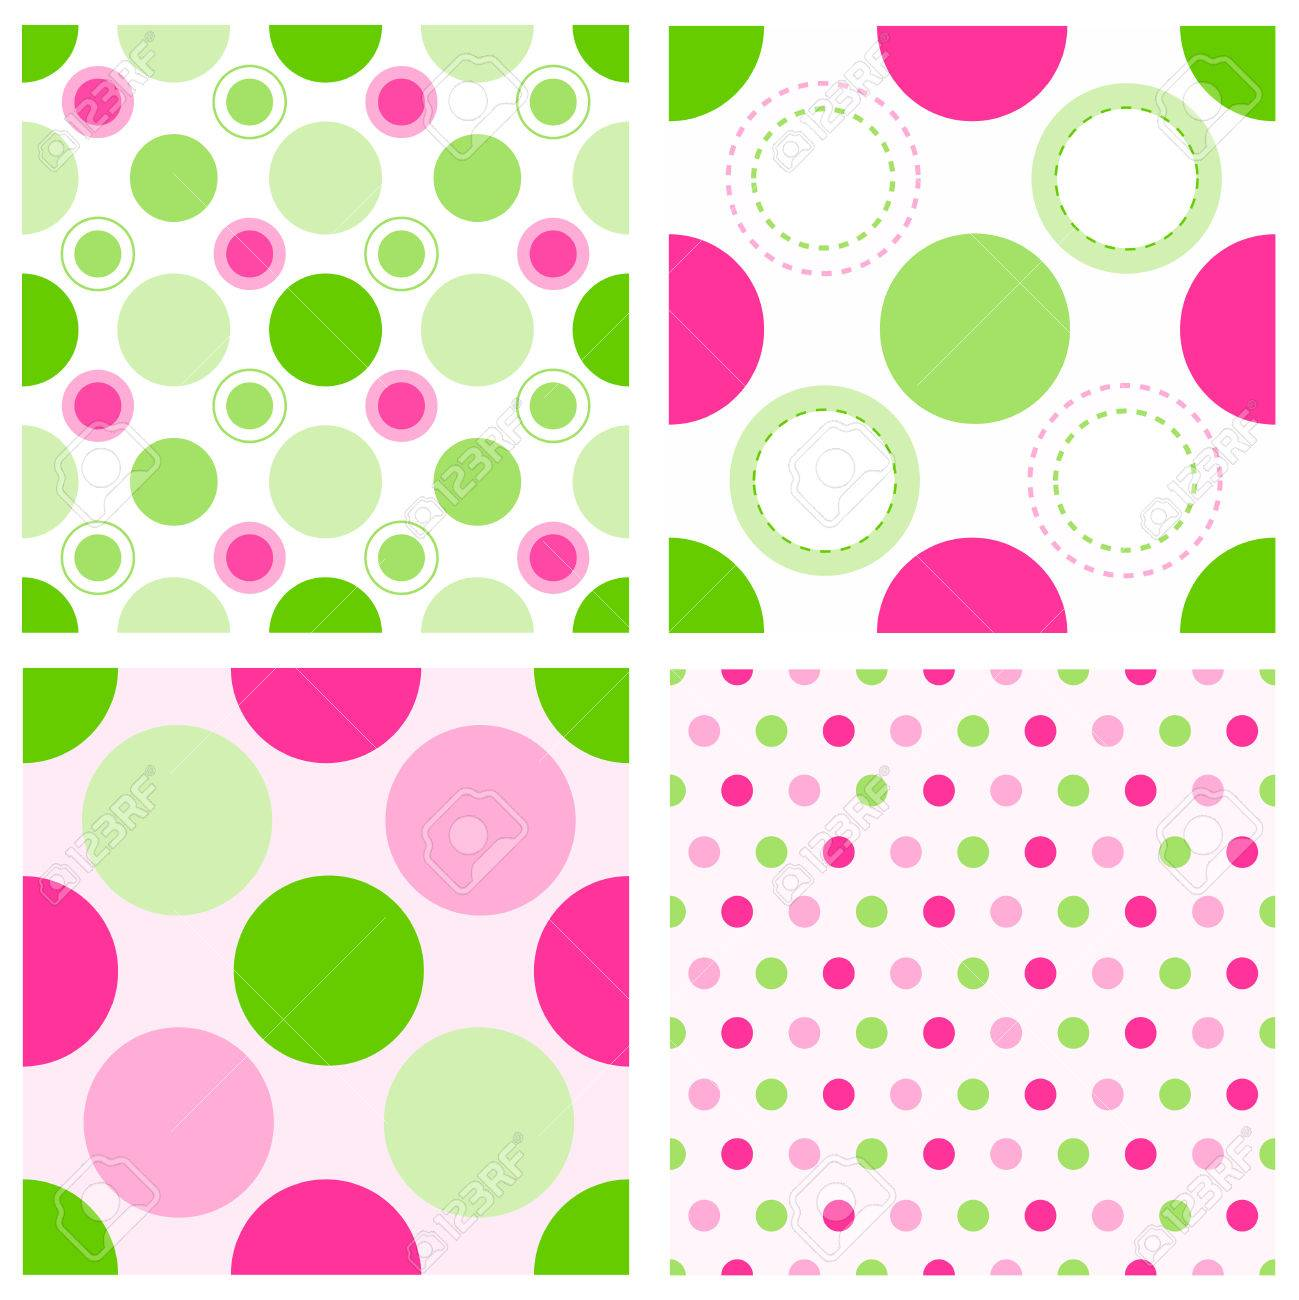 Collection Of Lovely Pink And Green Seamless Polka Dots Pattern Royalty Free Cliparts Vectors And Stock Illustration Image 38908744